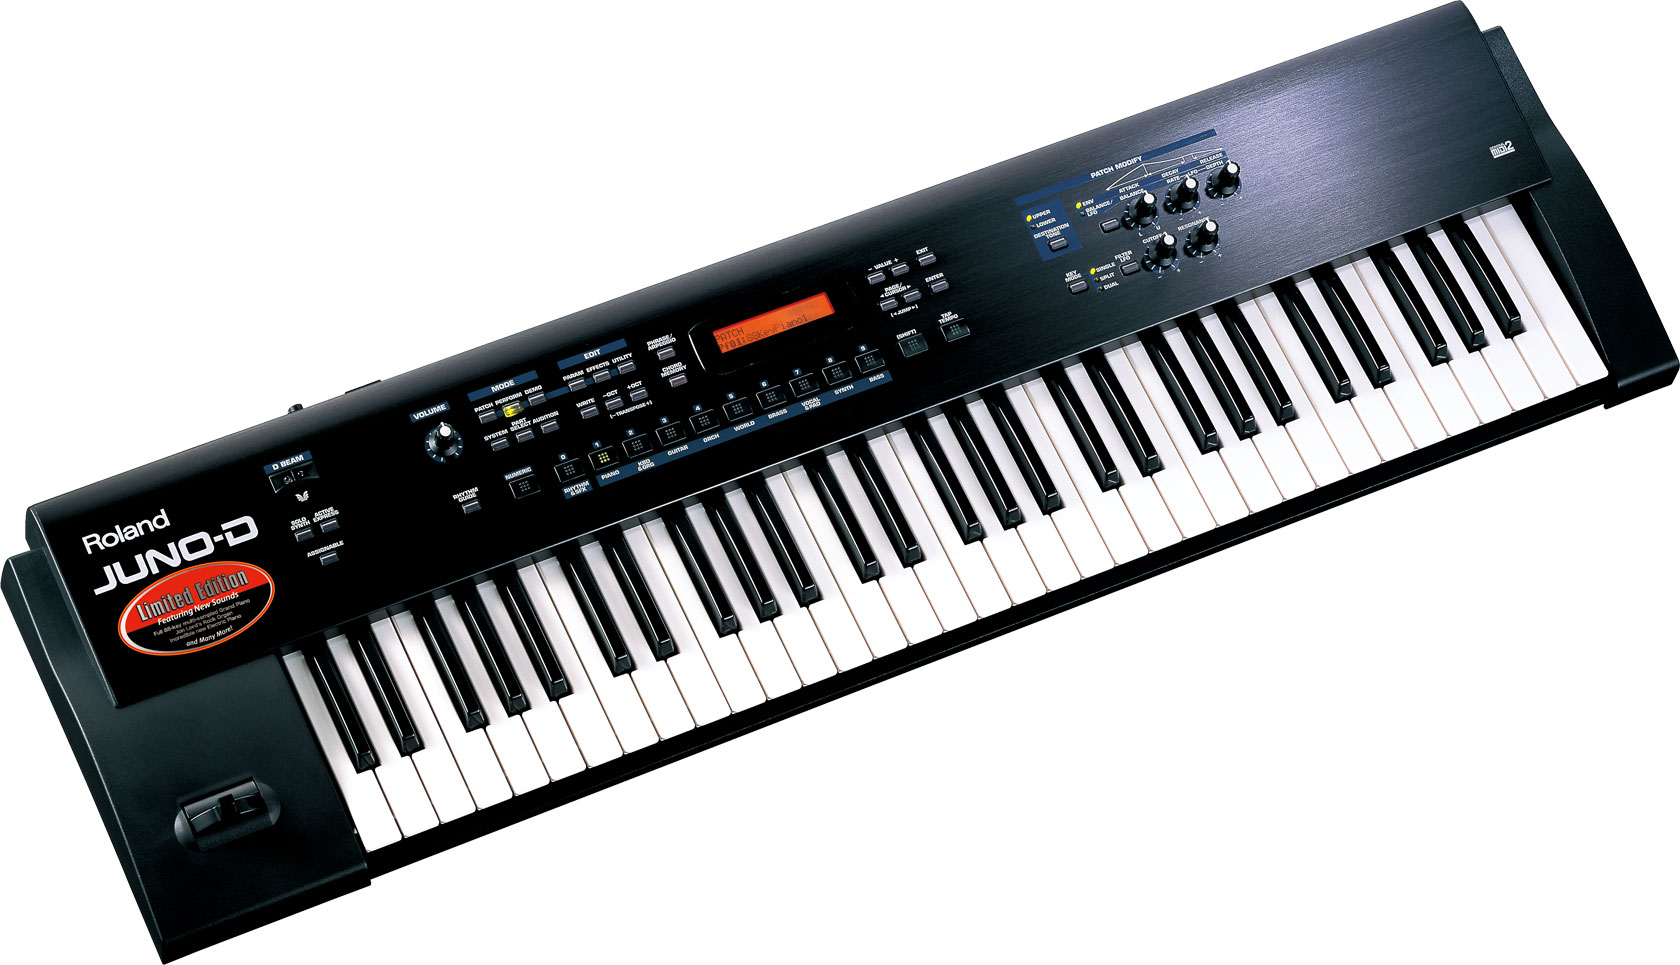 roland juno d limited edition synthesizer rh roland com roland juno d manual portugues roland juno ds manual list